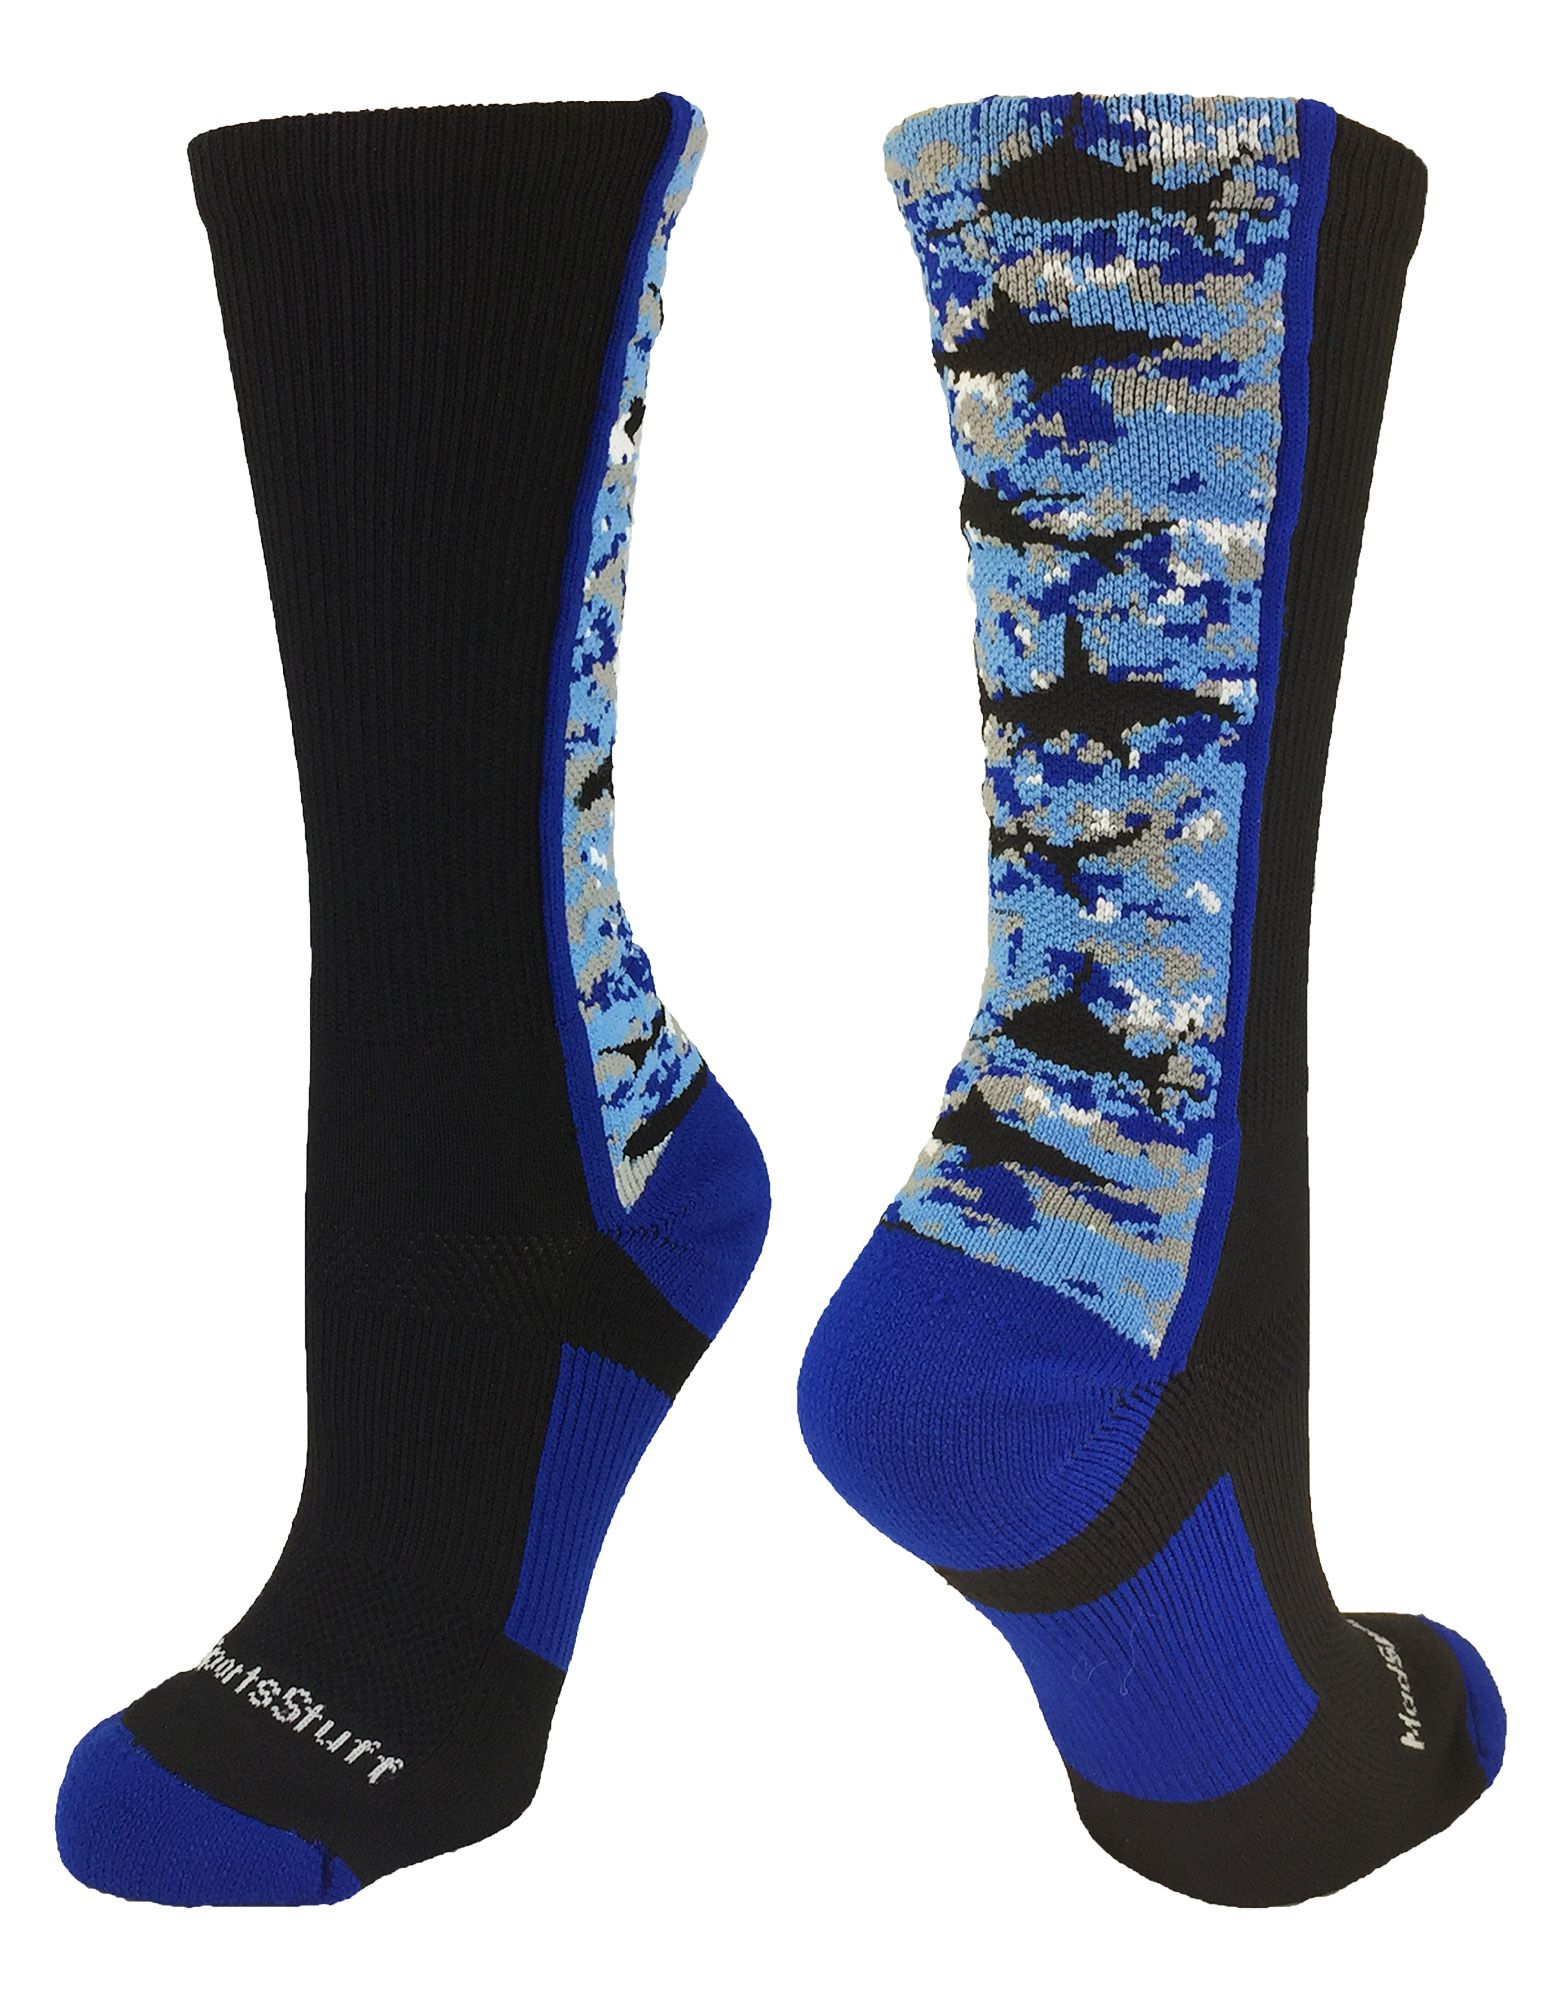 Just in- new for Spring 2016!  Anyone know any kids who would love to sport Shark Digital Camo crew socks?  Great basketball socks, lacrosse socks, flag football socks or just for fun!